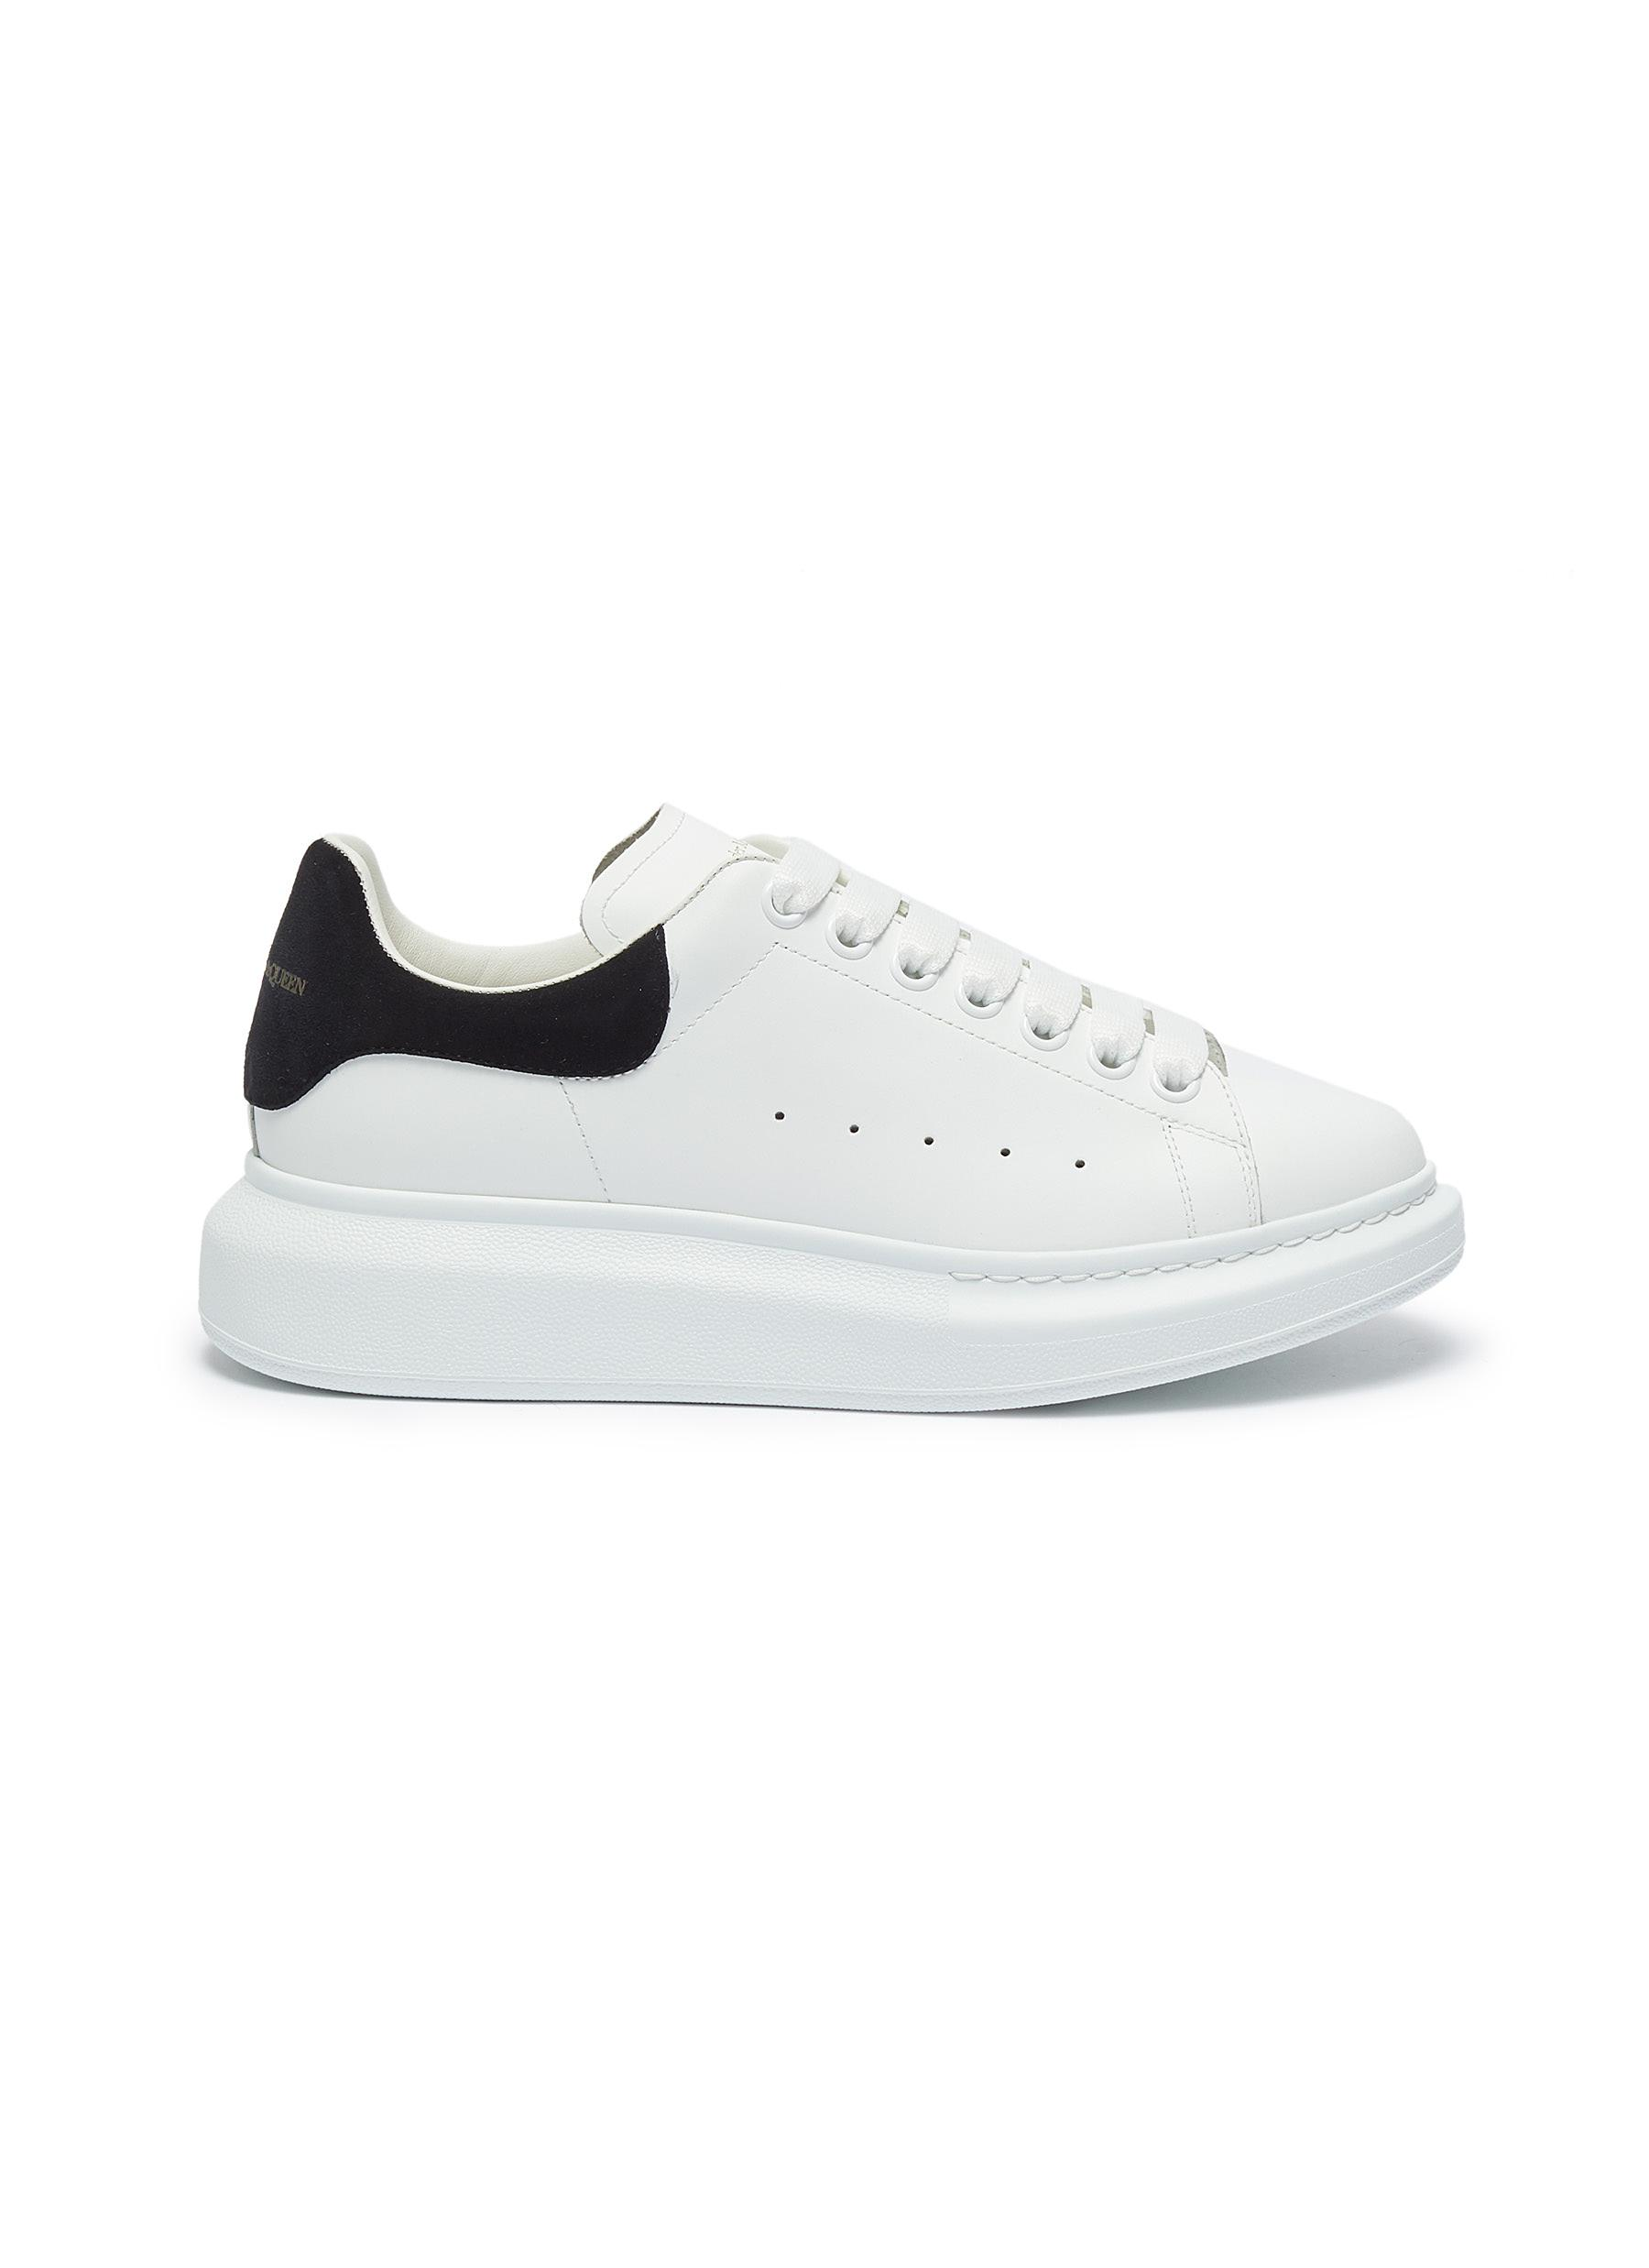 'Oversized sneaker' with contrasting tab